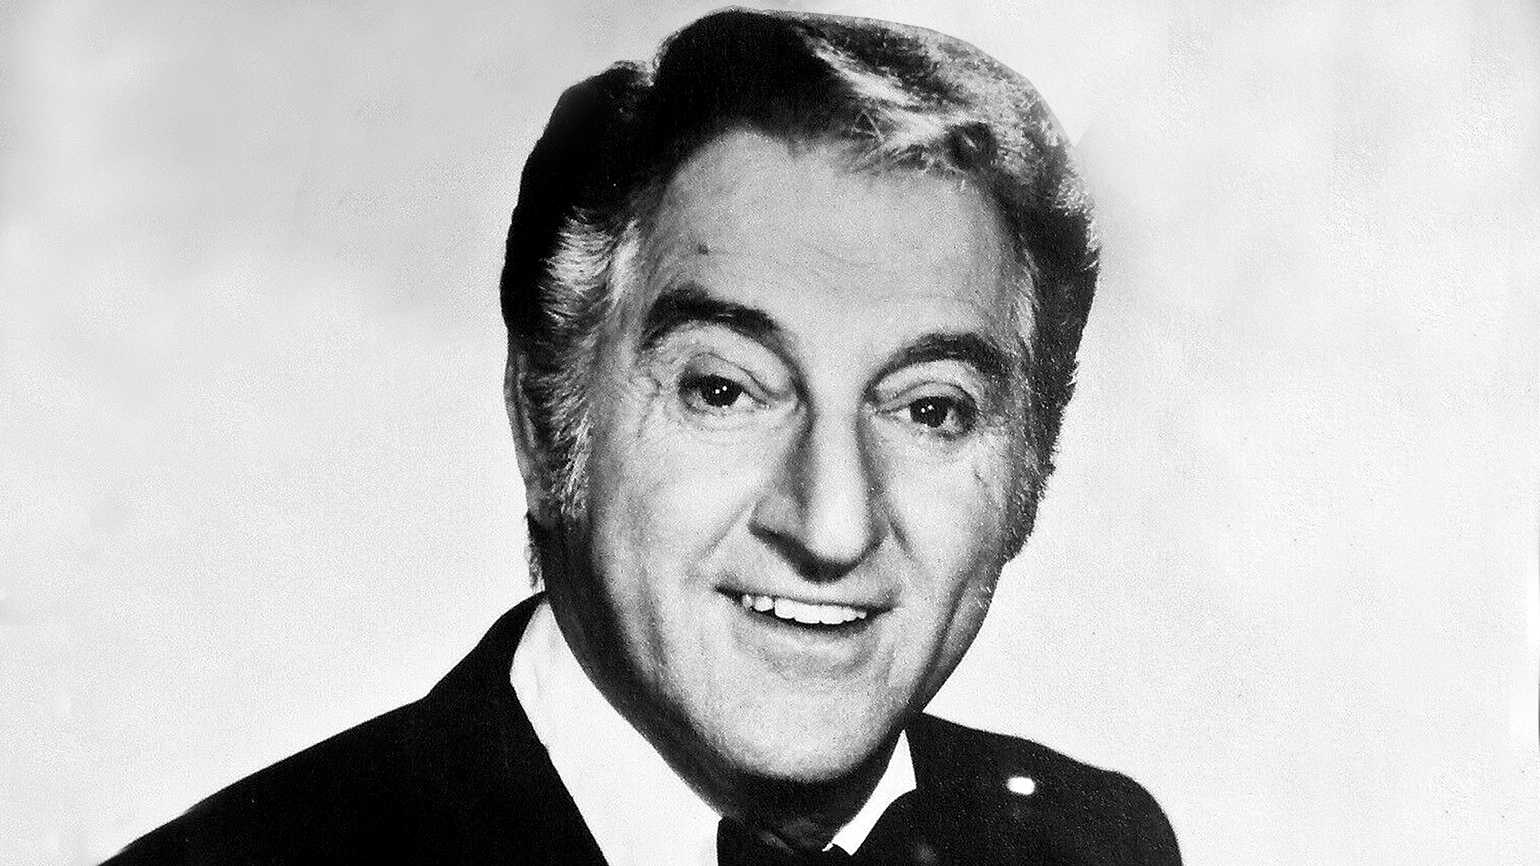 Actor and humanitarian Danny Thomas